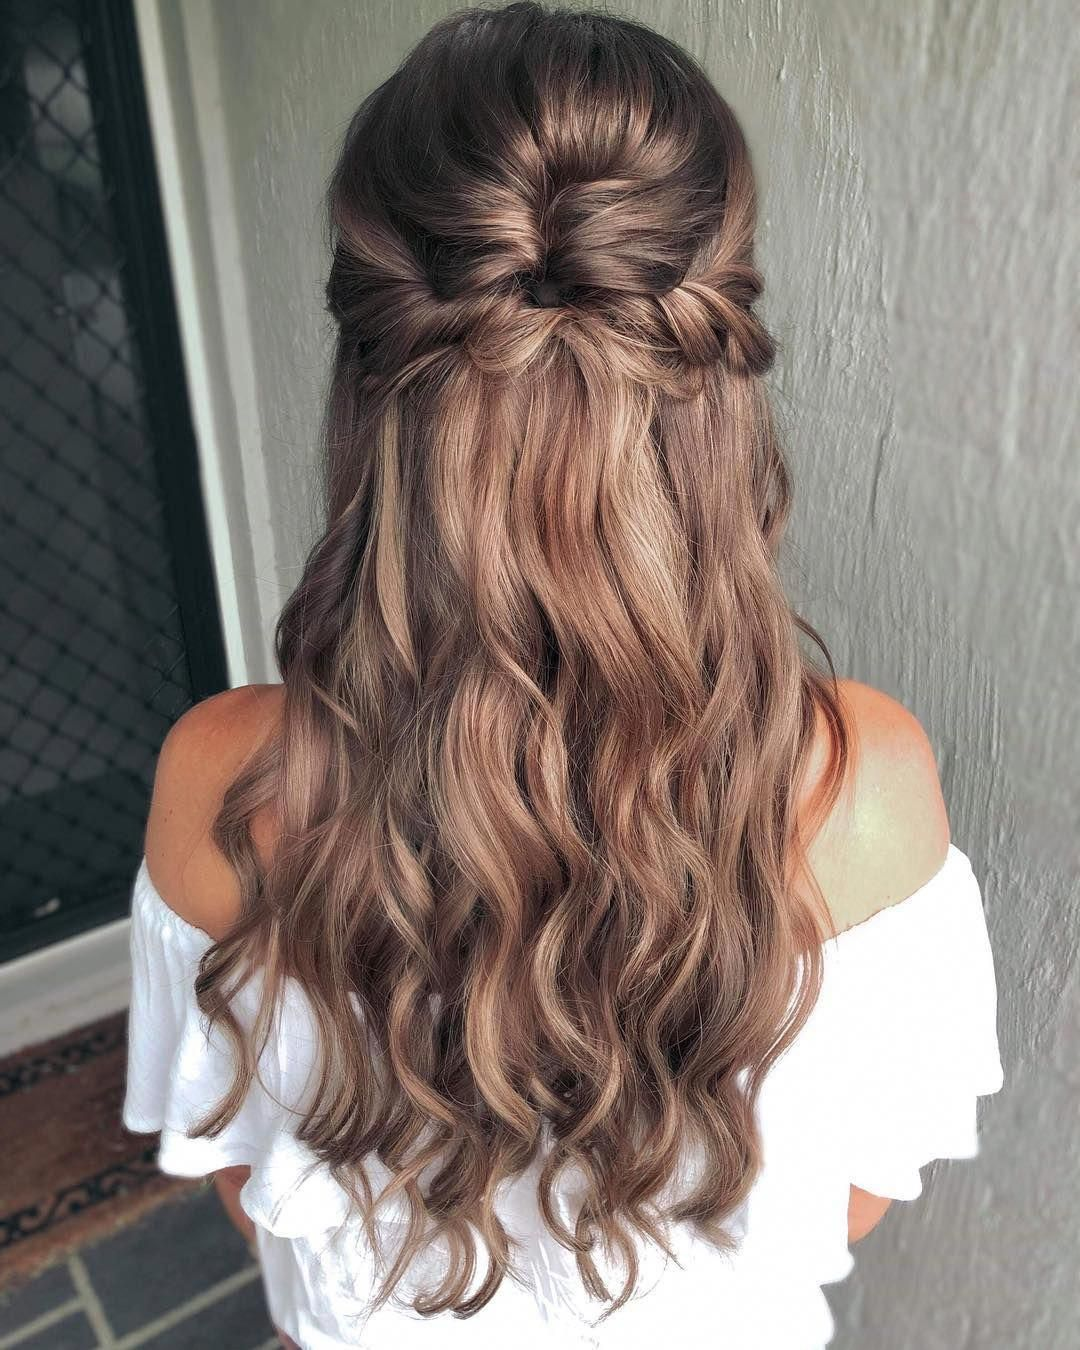 Formal Hairstyles For Long Hair Curly Wedding Hair Styles For Curly Hair Bestlonghairstyles Quince Hairstyles Curly Wedding Hair Flower Girl Hairstyles